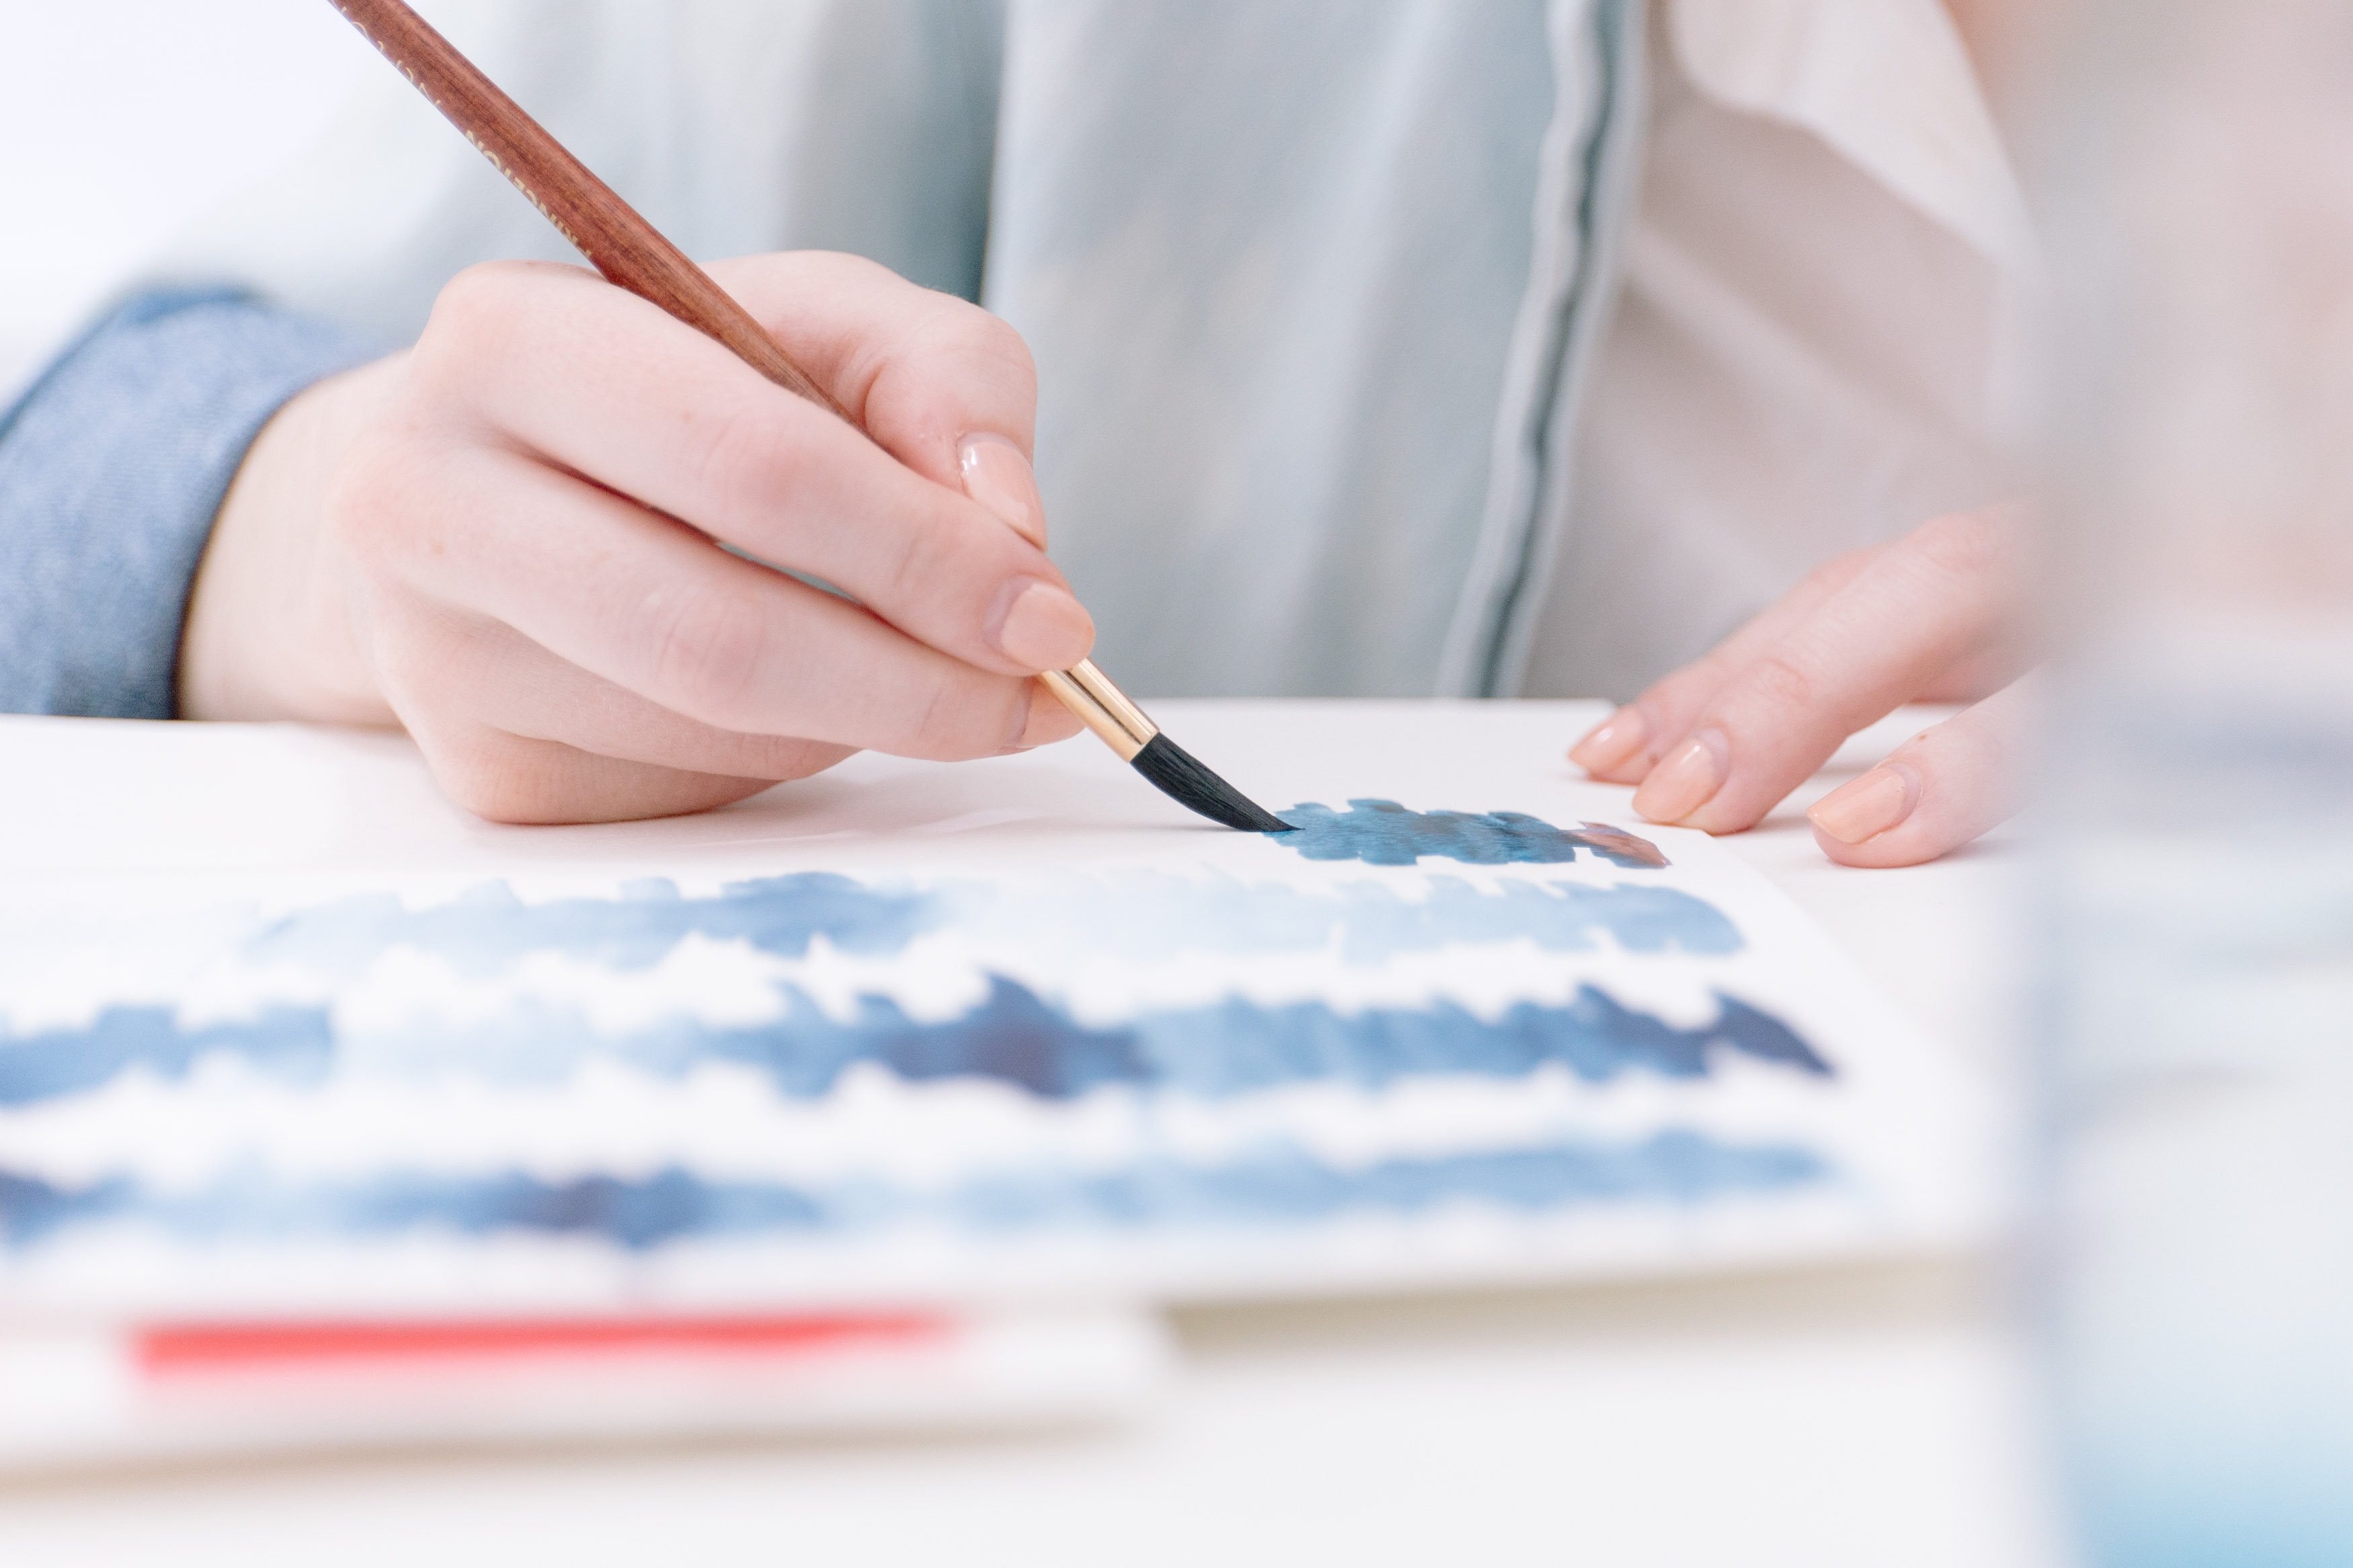 A person painting in watercolor